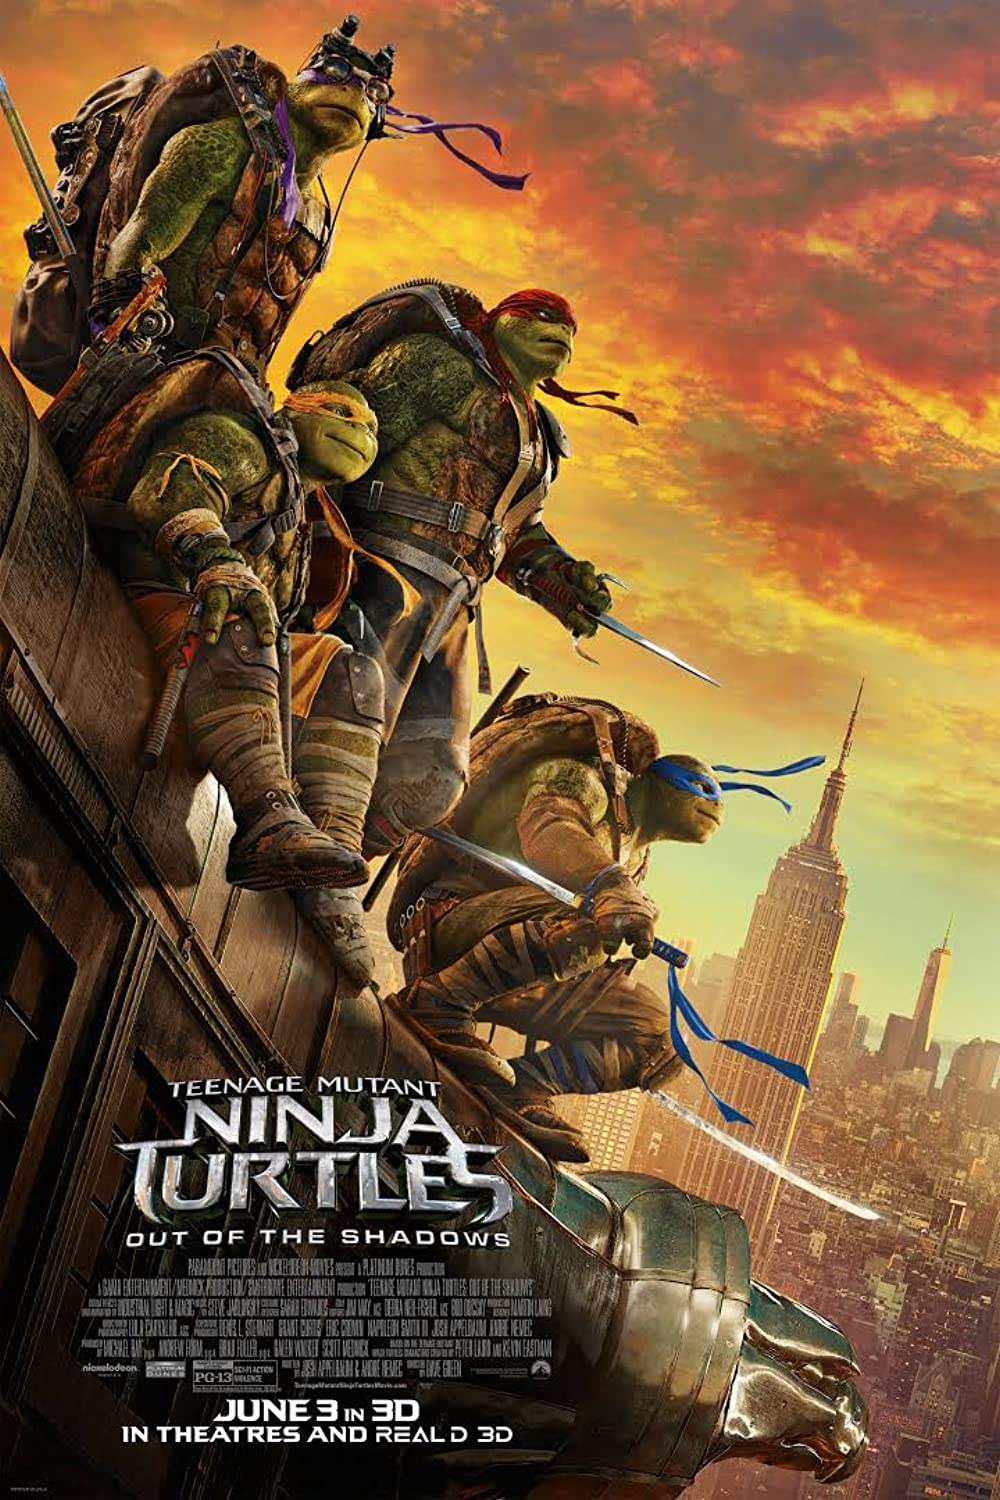 Download Teenage Mutant Ninja Turtles: Out of the Shadows 2016 Hindi Dual Audio 480p BluRay ESubs 400MB